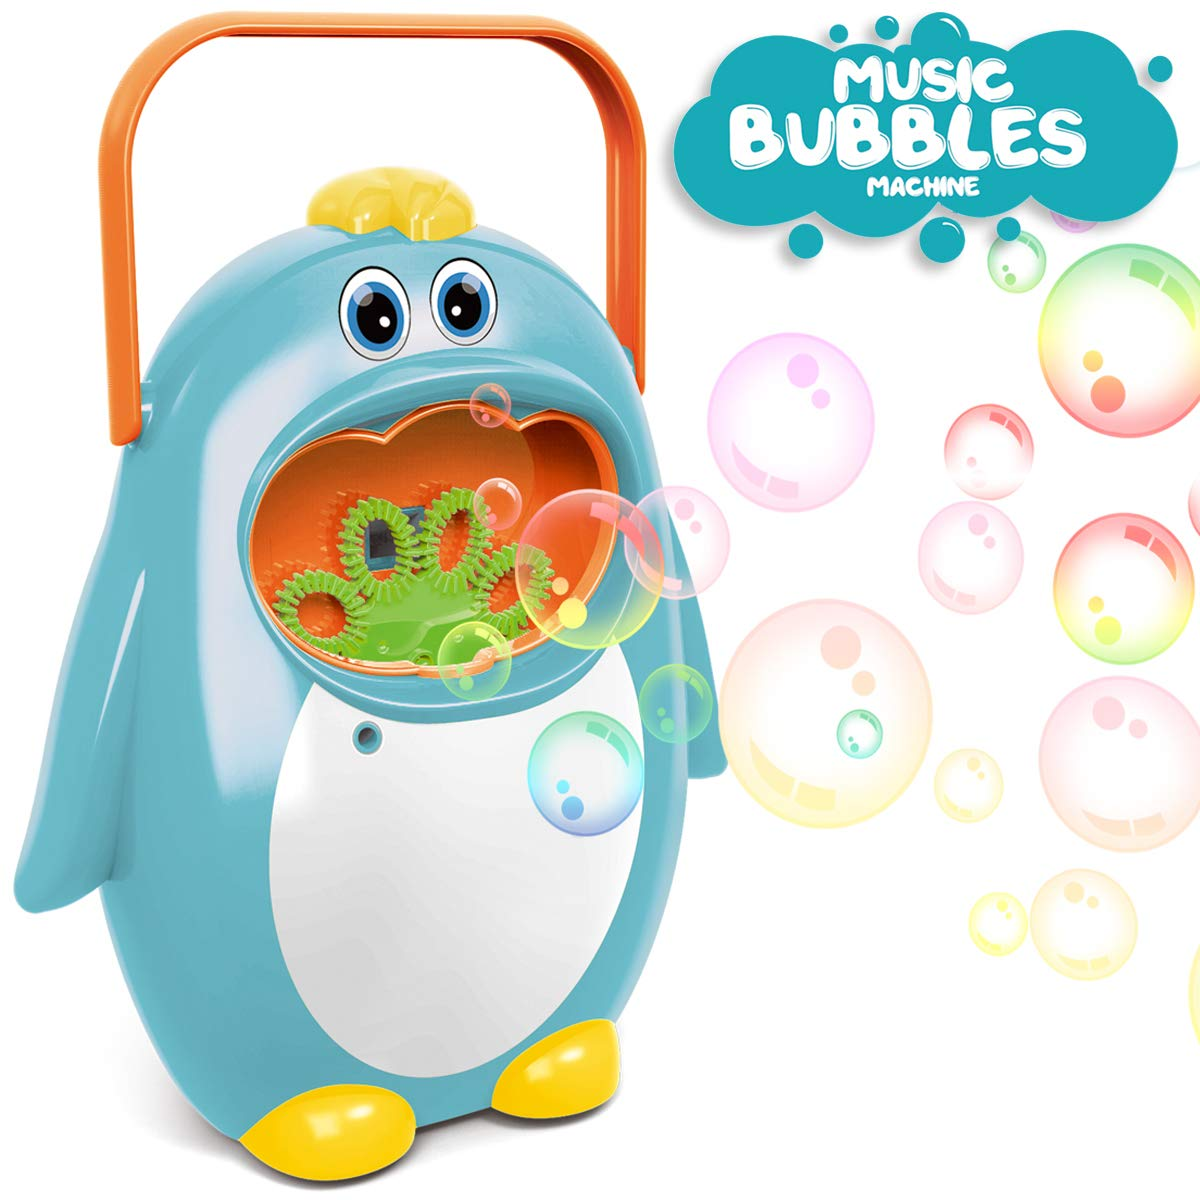 A bubble machine that looks like a Penguin.